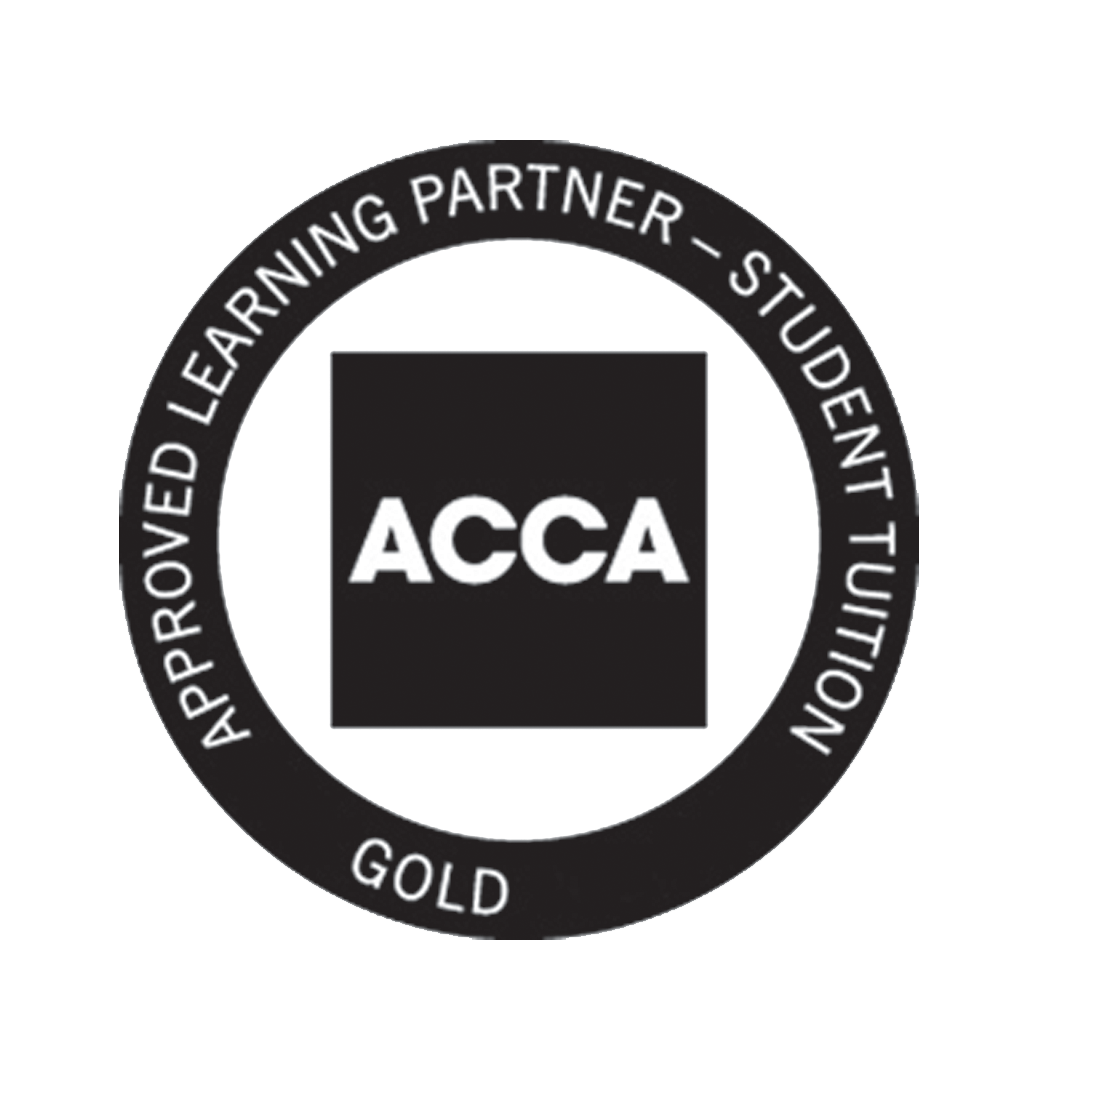 ACCA gold071211